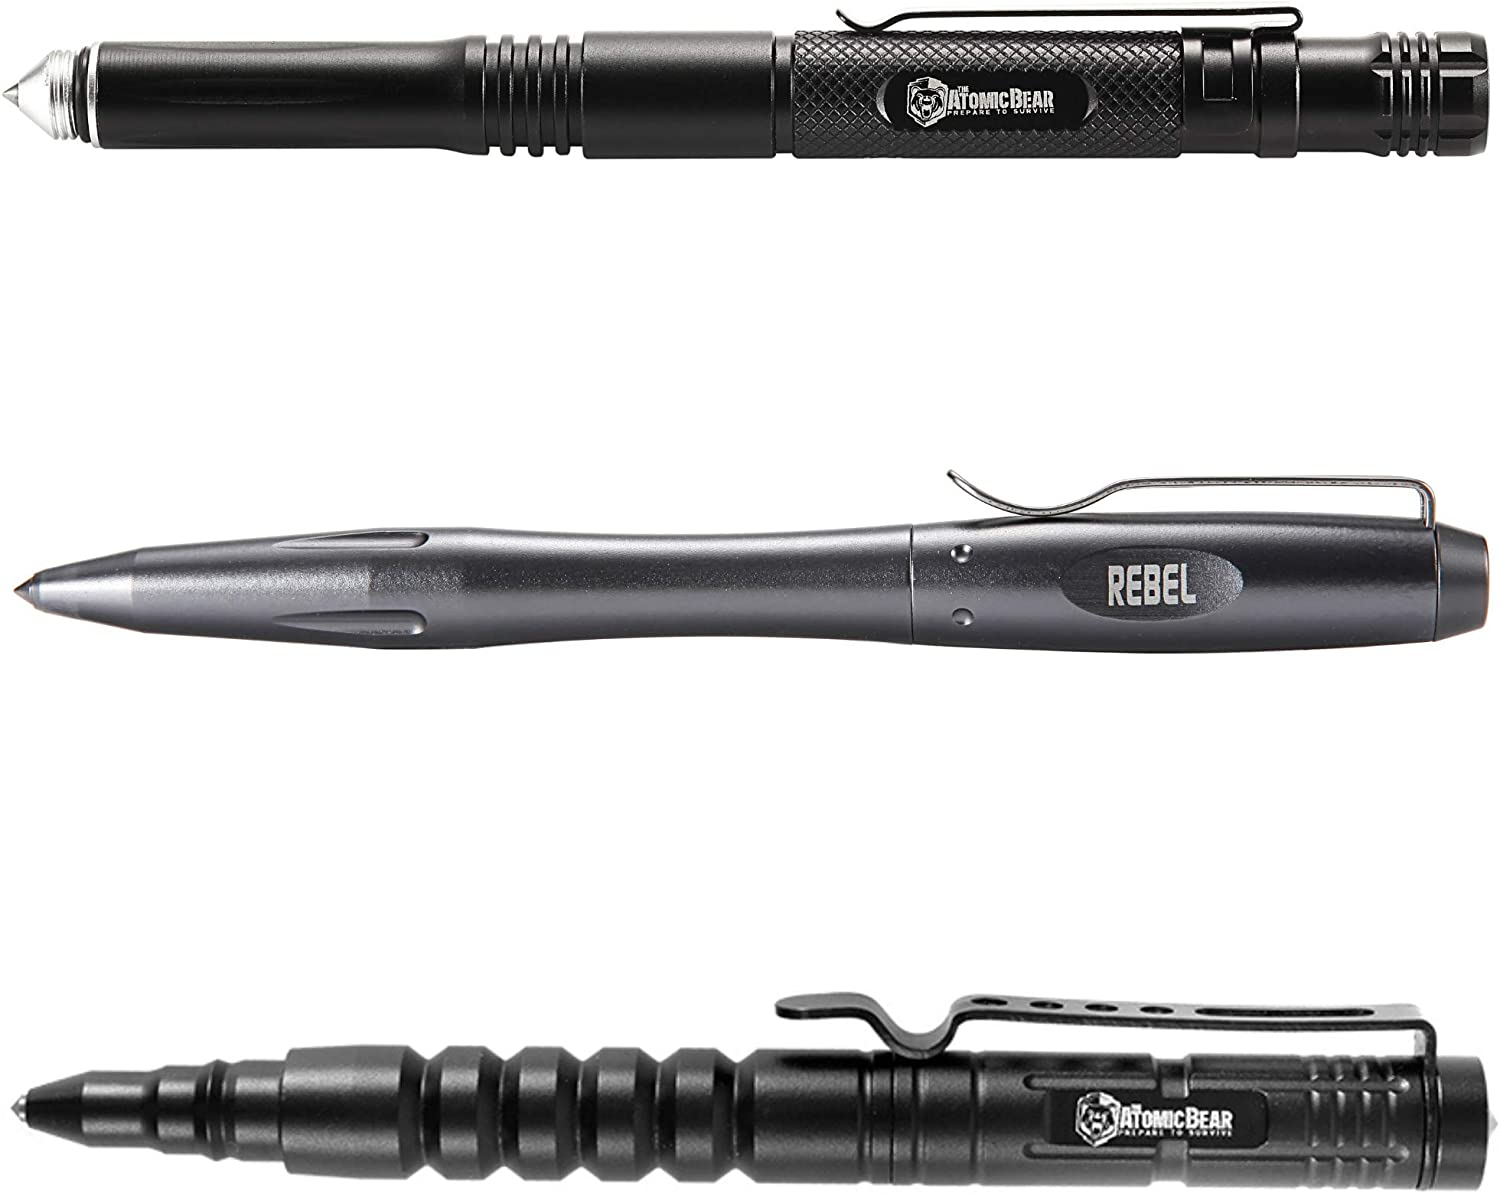 Tactical Pen Accessories for MTP-6 by Atomic Bear